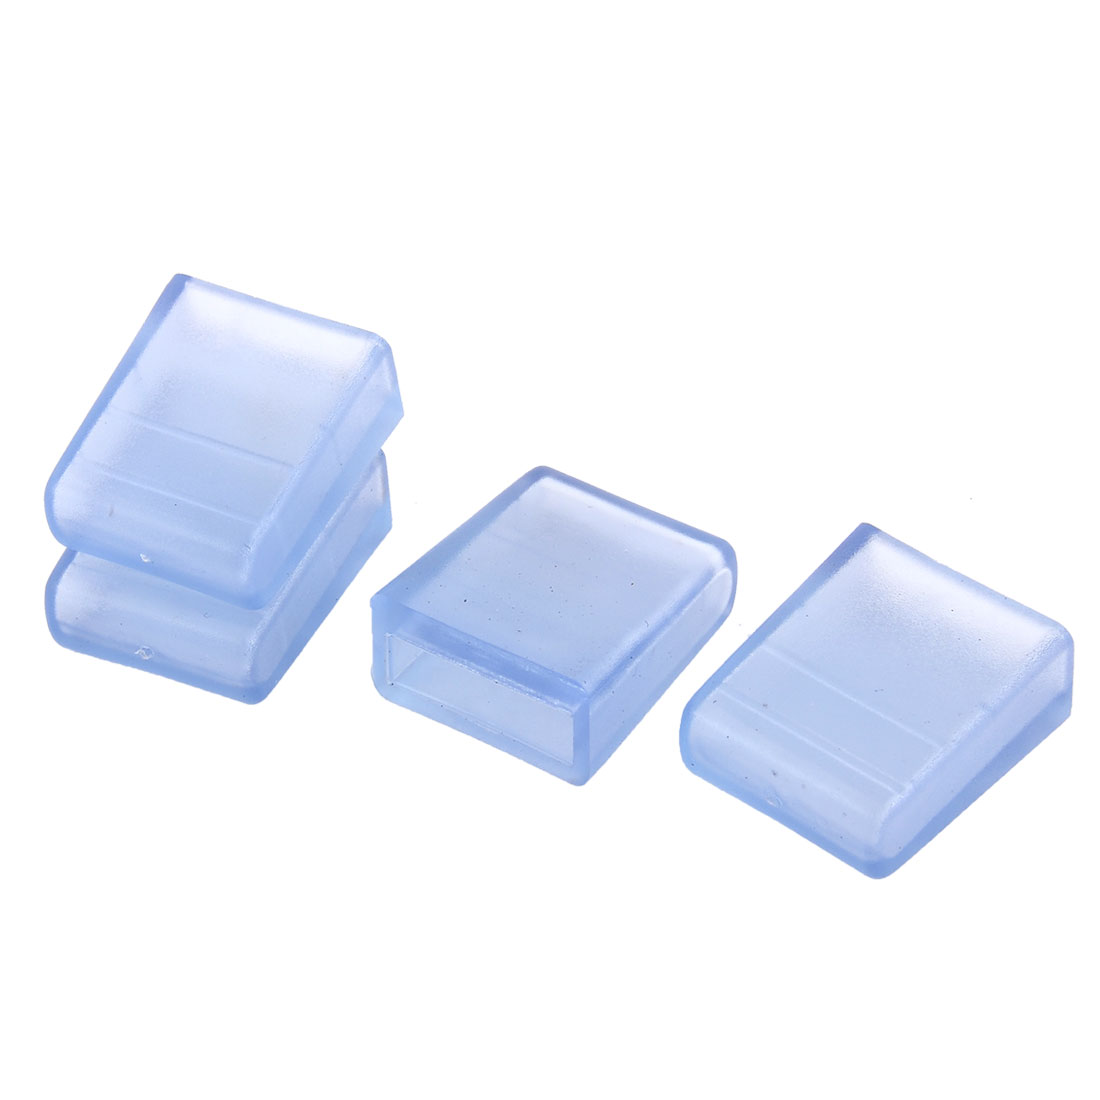 Home Household Transparent Square Water Pipe Fitting Tube End Cap Covers 10x30mm Inner Dia 4pcs